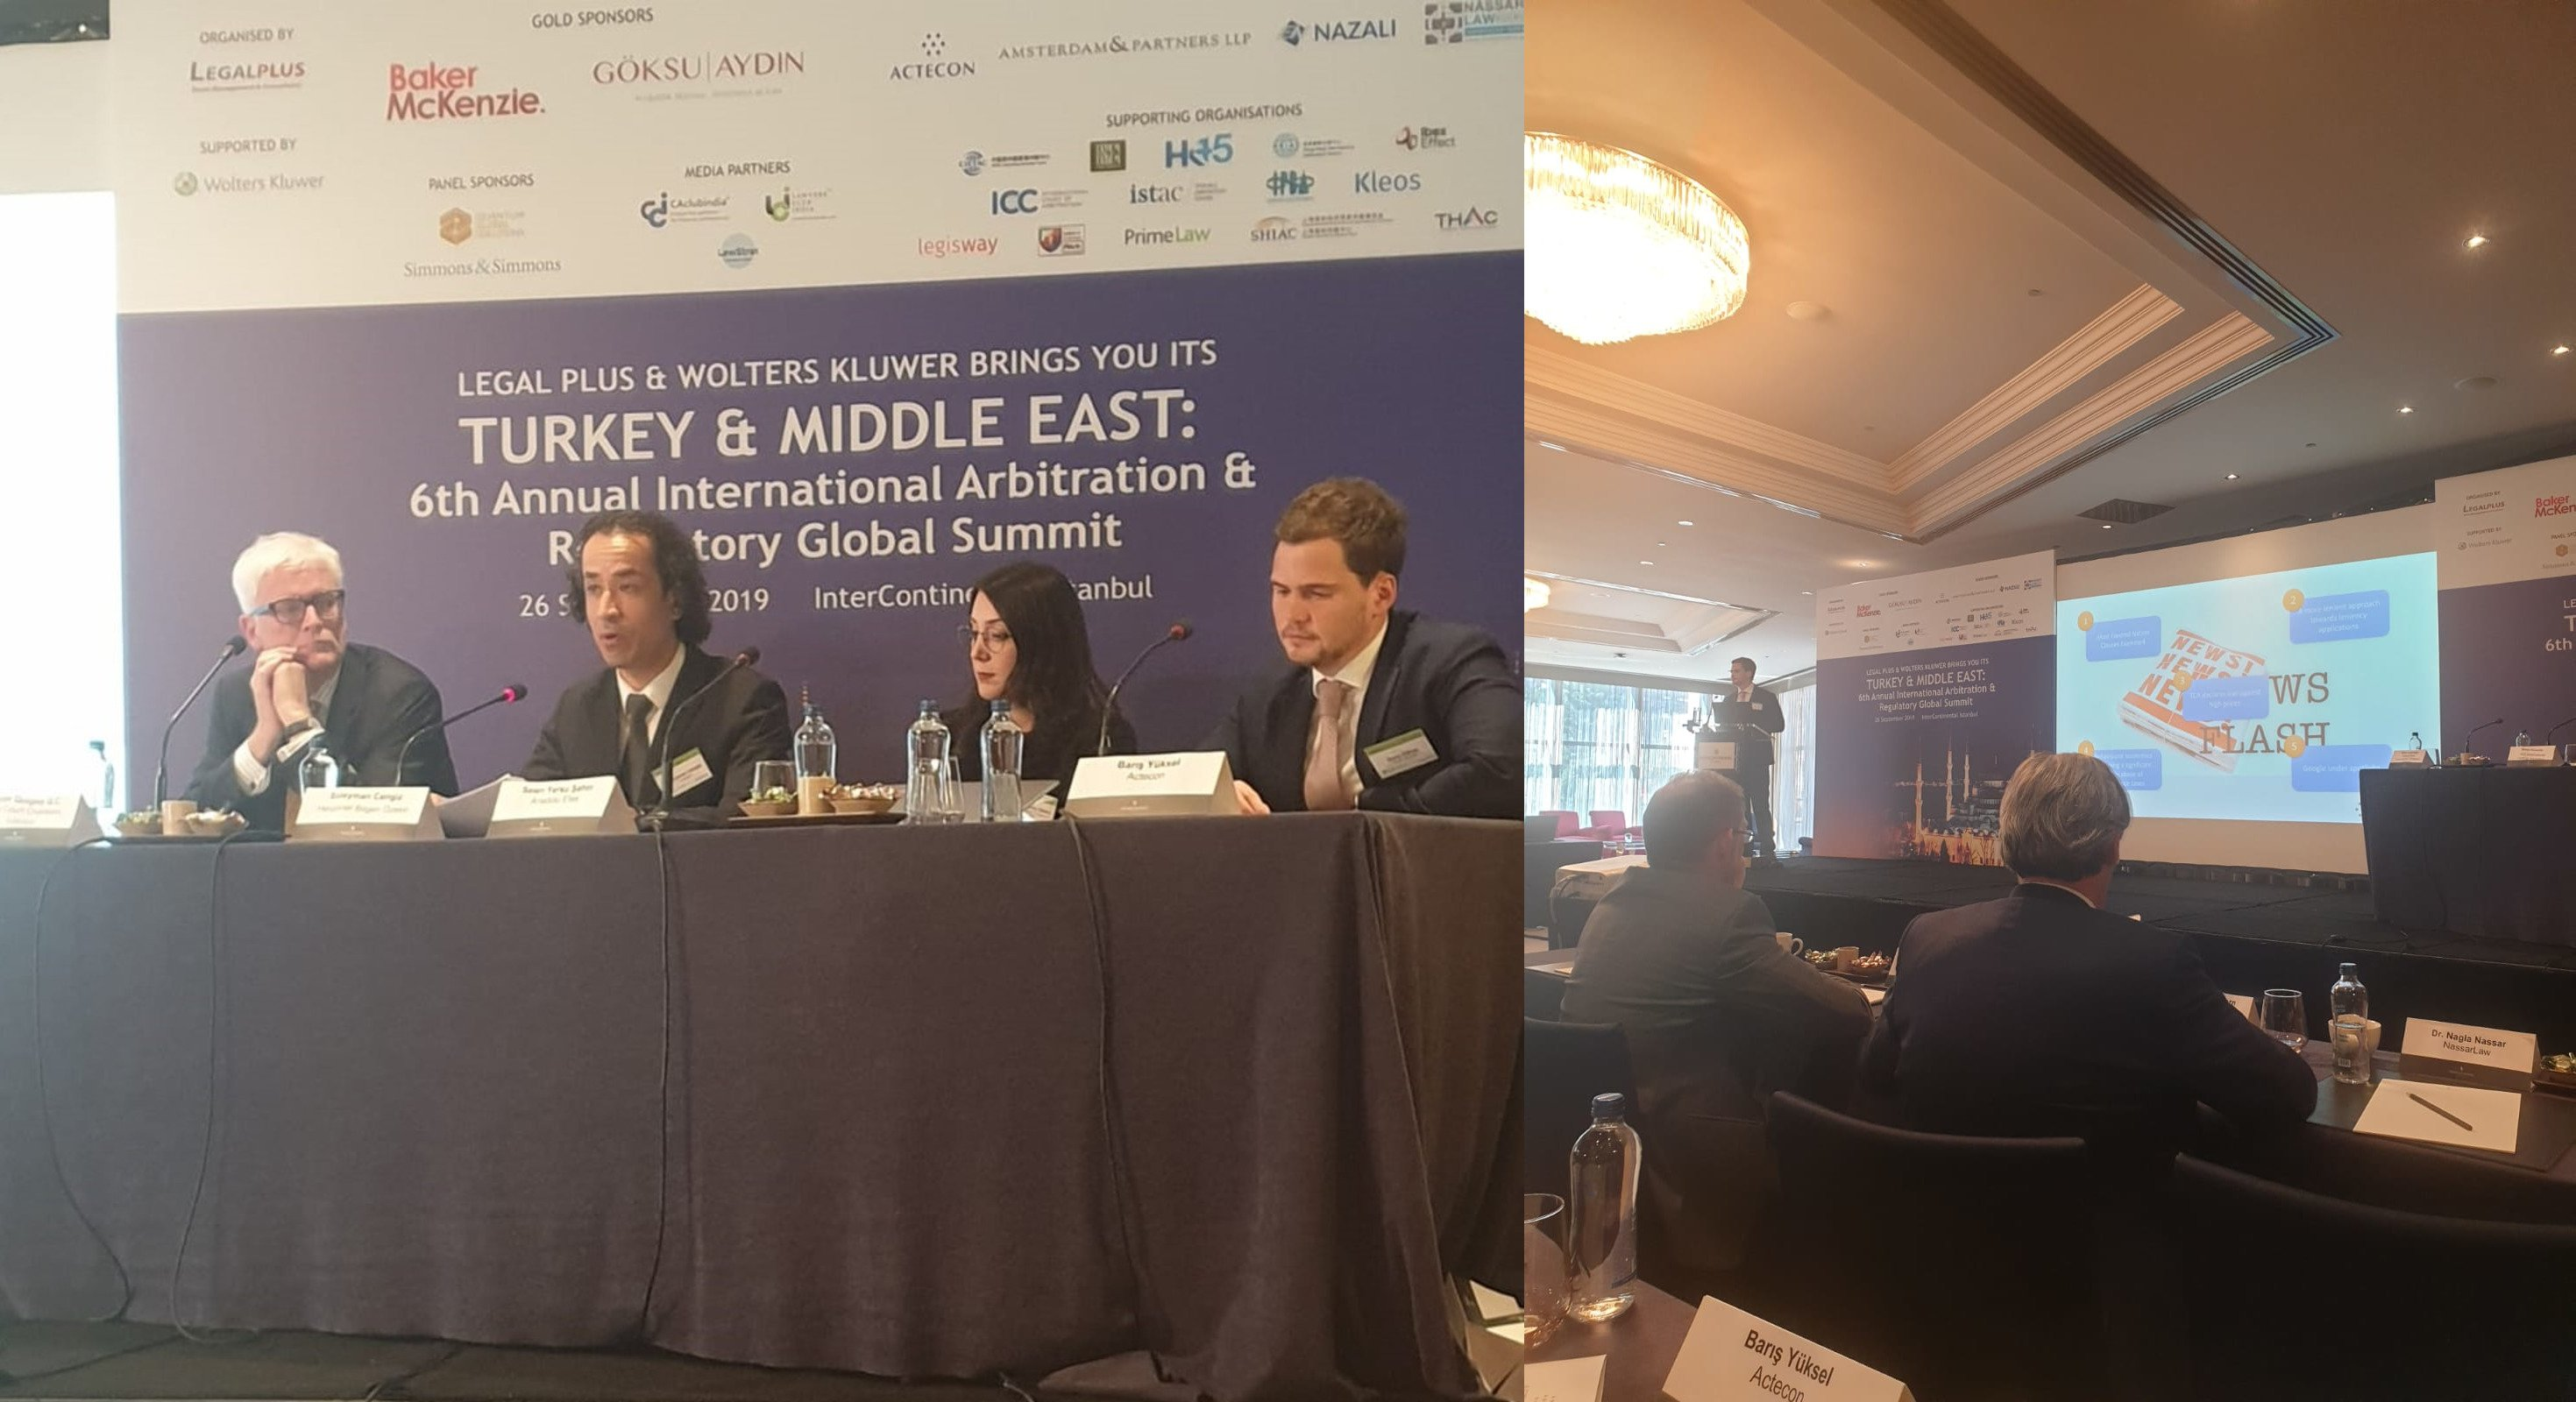 Turkey & Middle East  6th Annual International Arbitration and Regulatory Global Summit